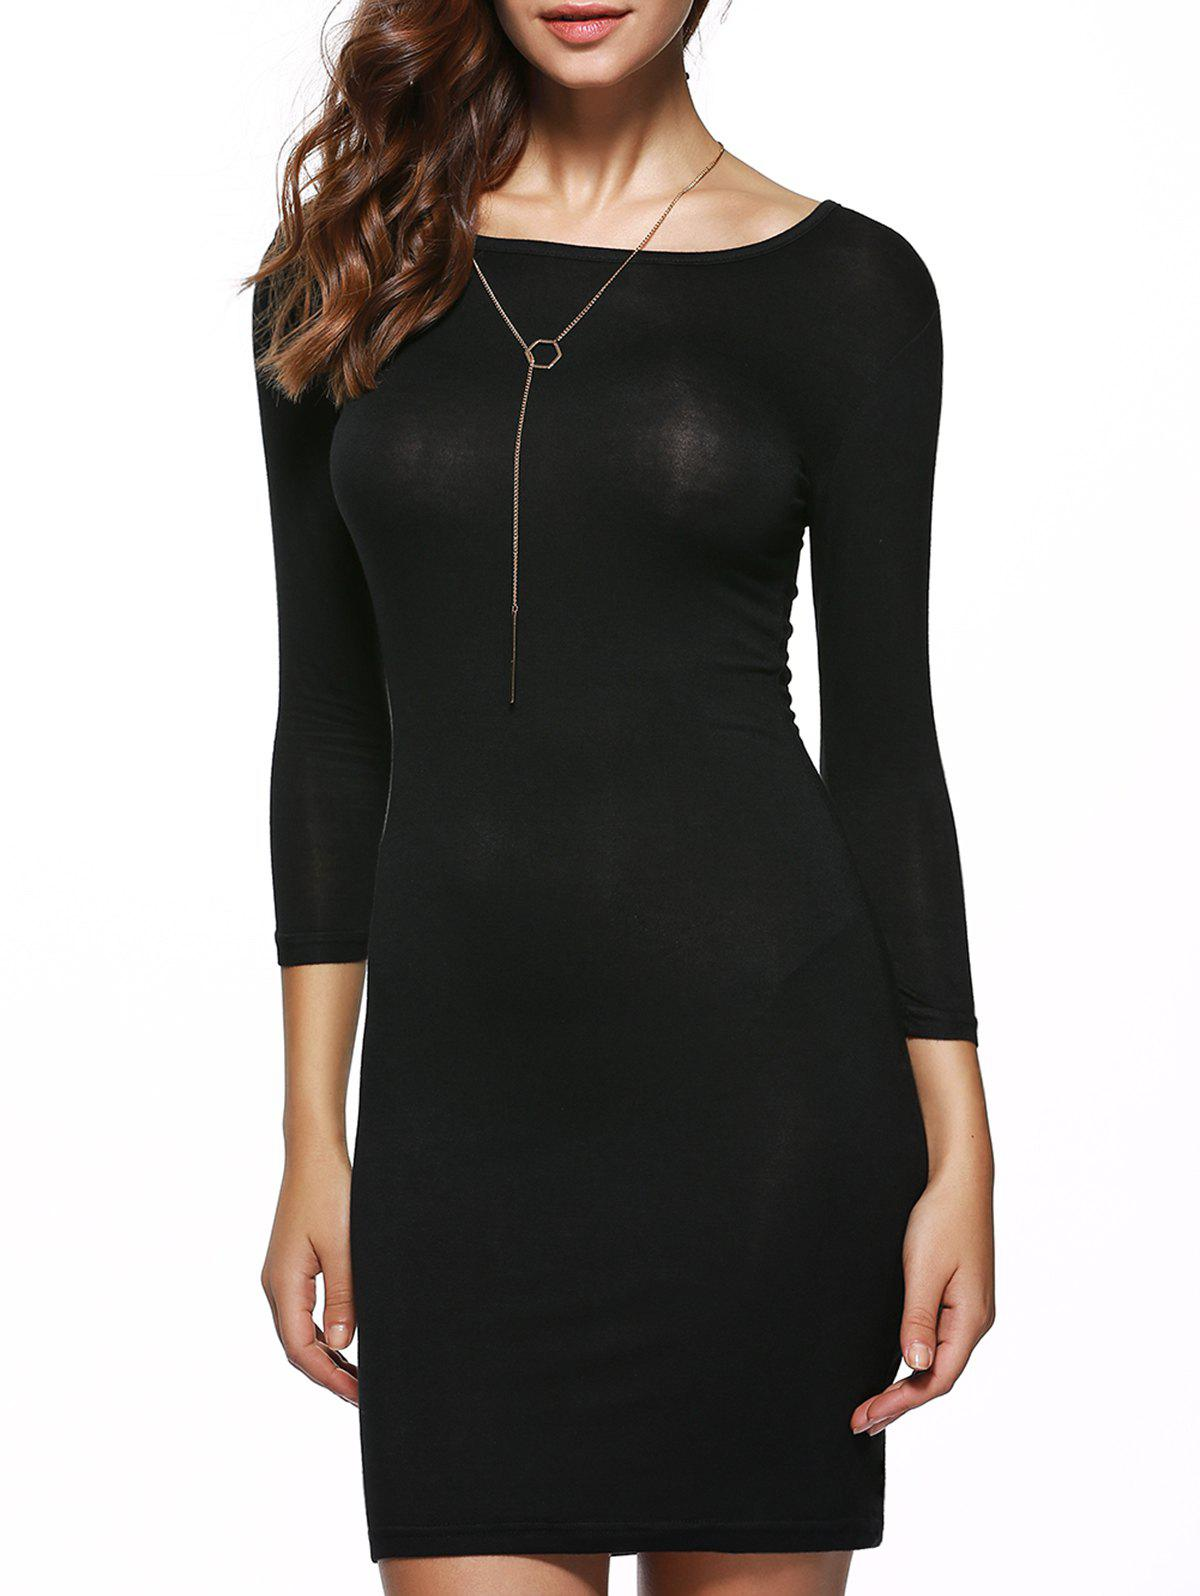 Elegant Pure Color Stretchy Bodycon Dress - BLACK XL